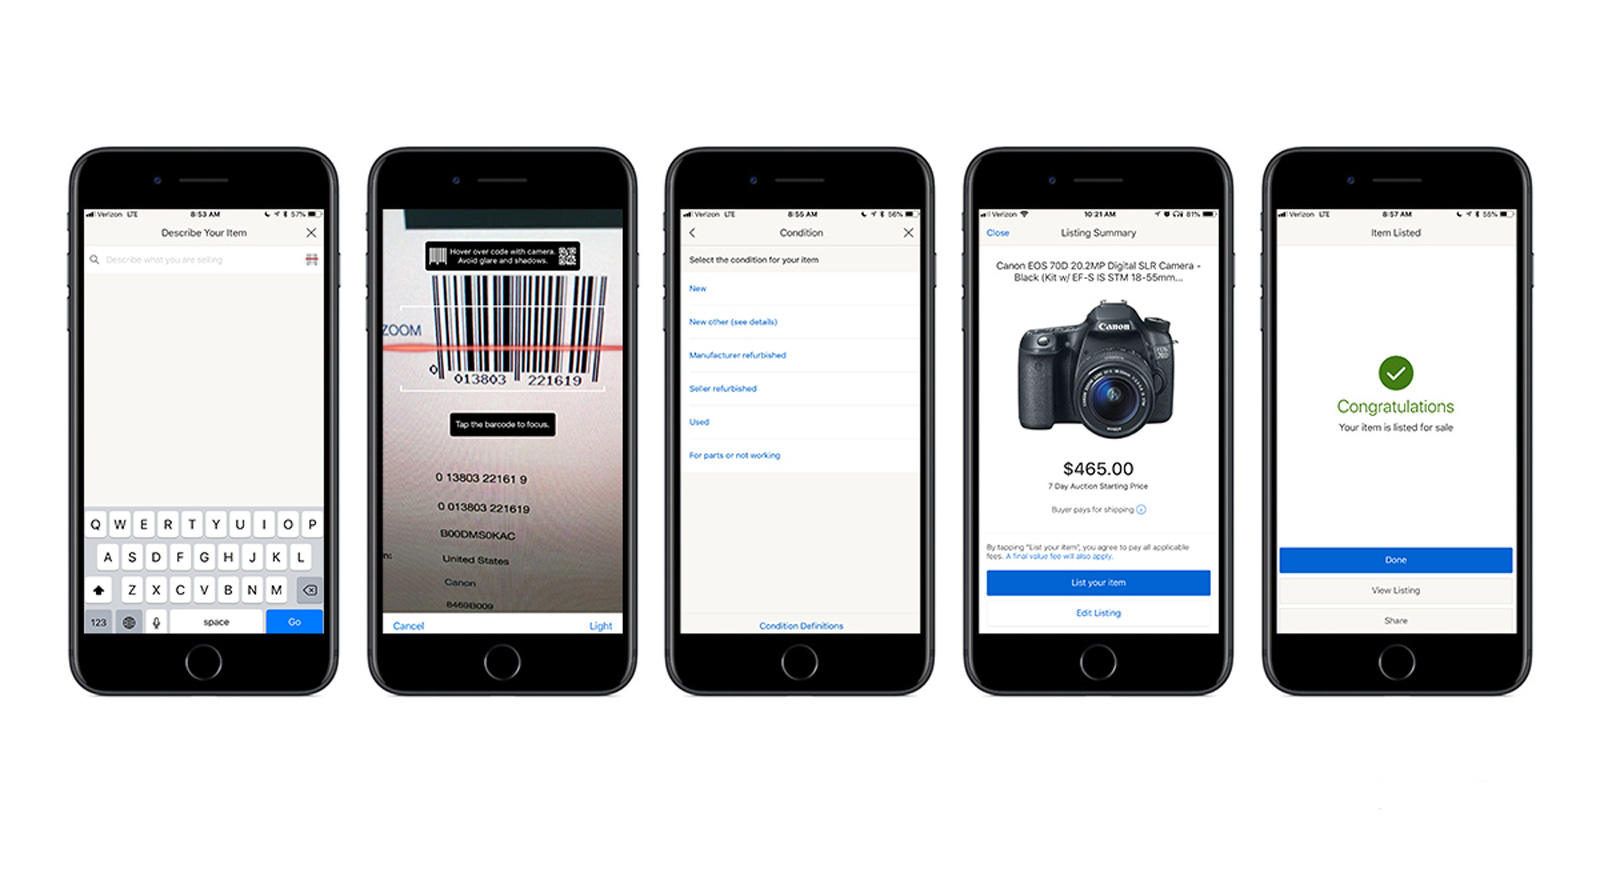 ebay app for android review